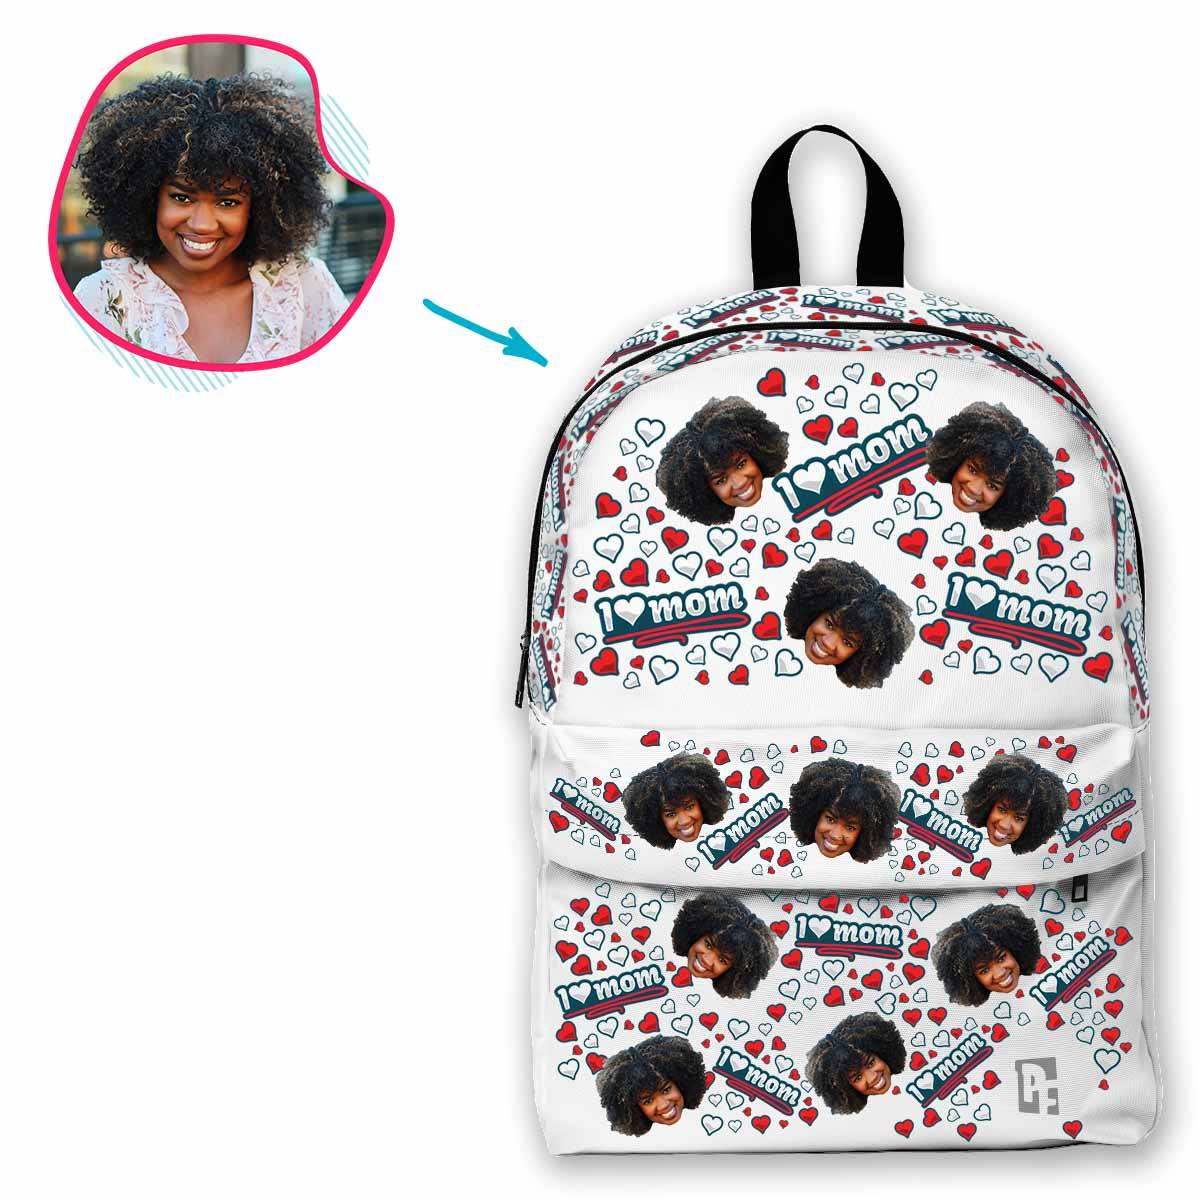 white Love Mom classic backpack personalized with photo of face printed on it